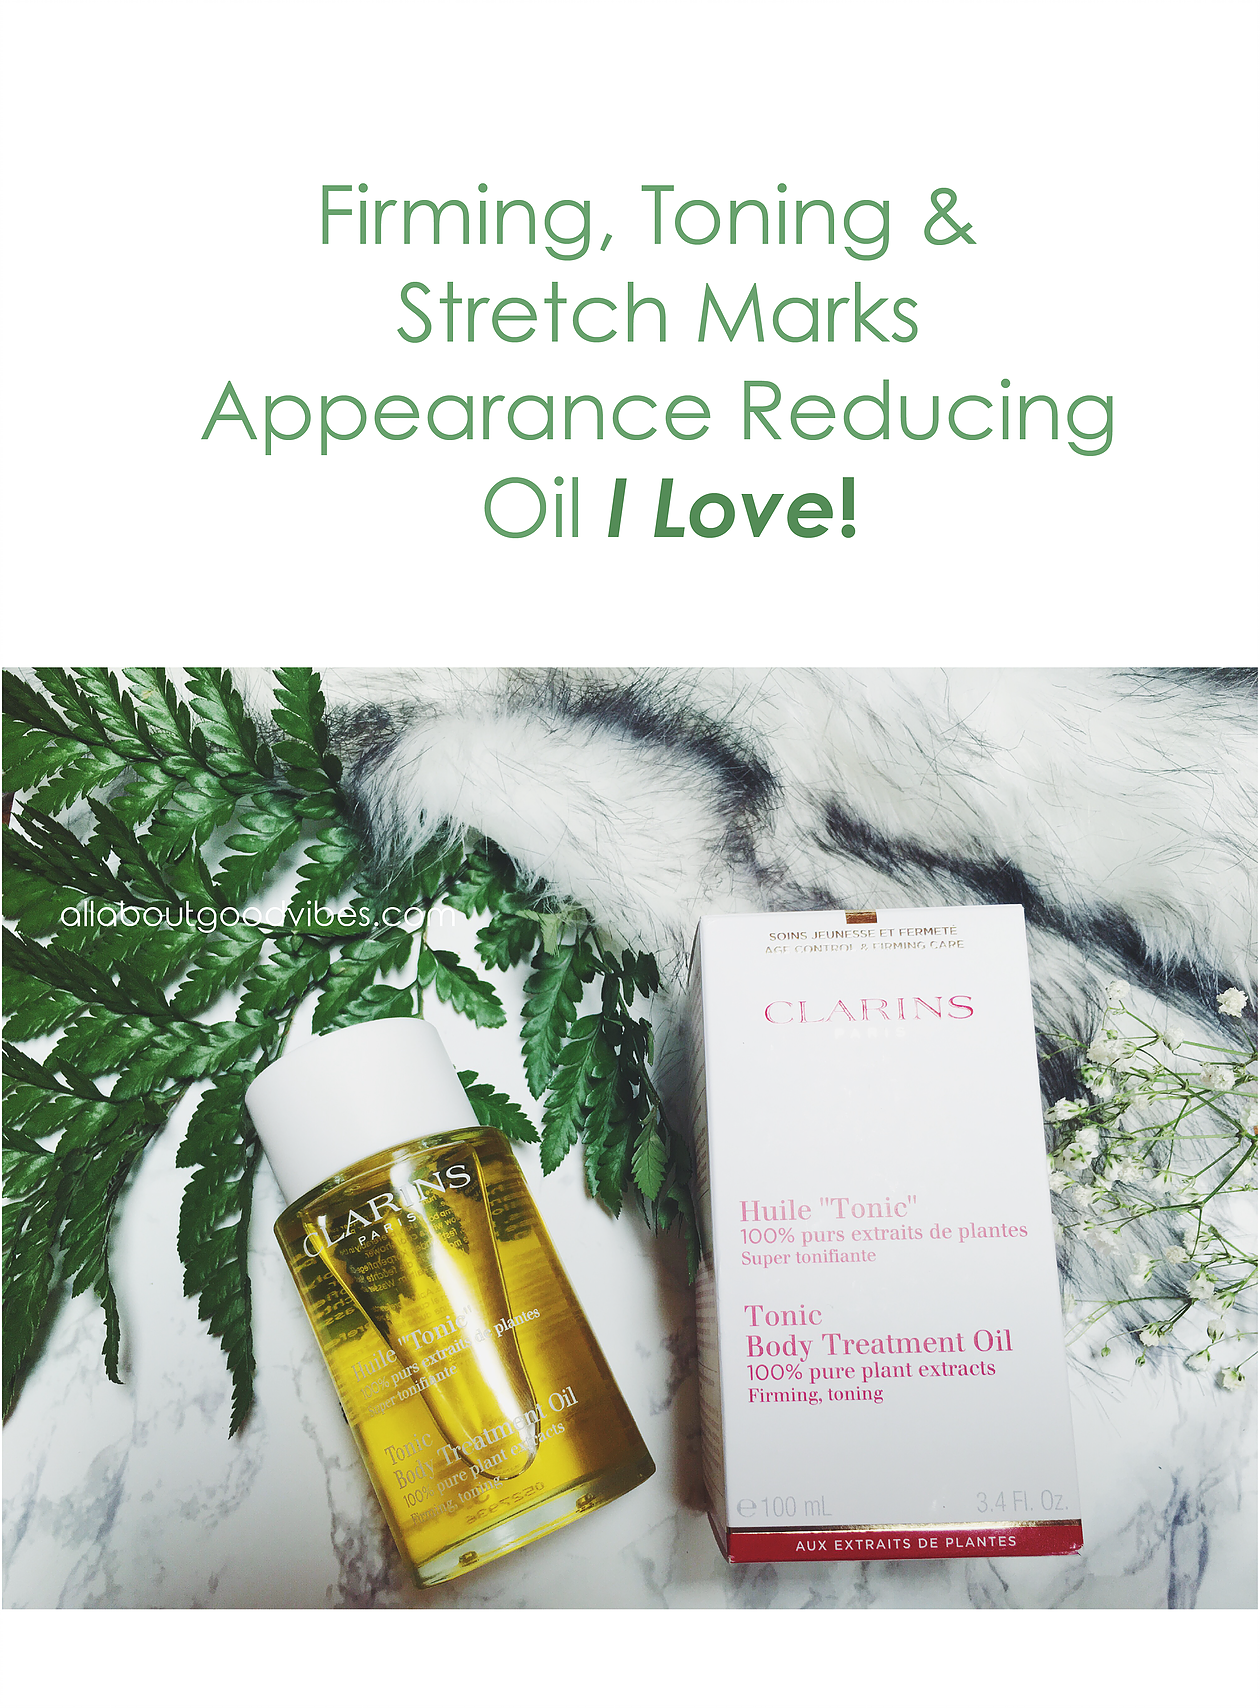 Firming, Toning and Stretch Marks Appearance Reducing Oil I Love!